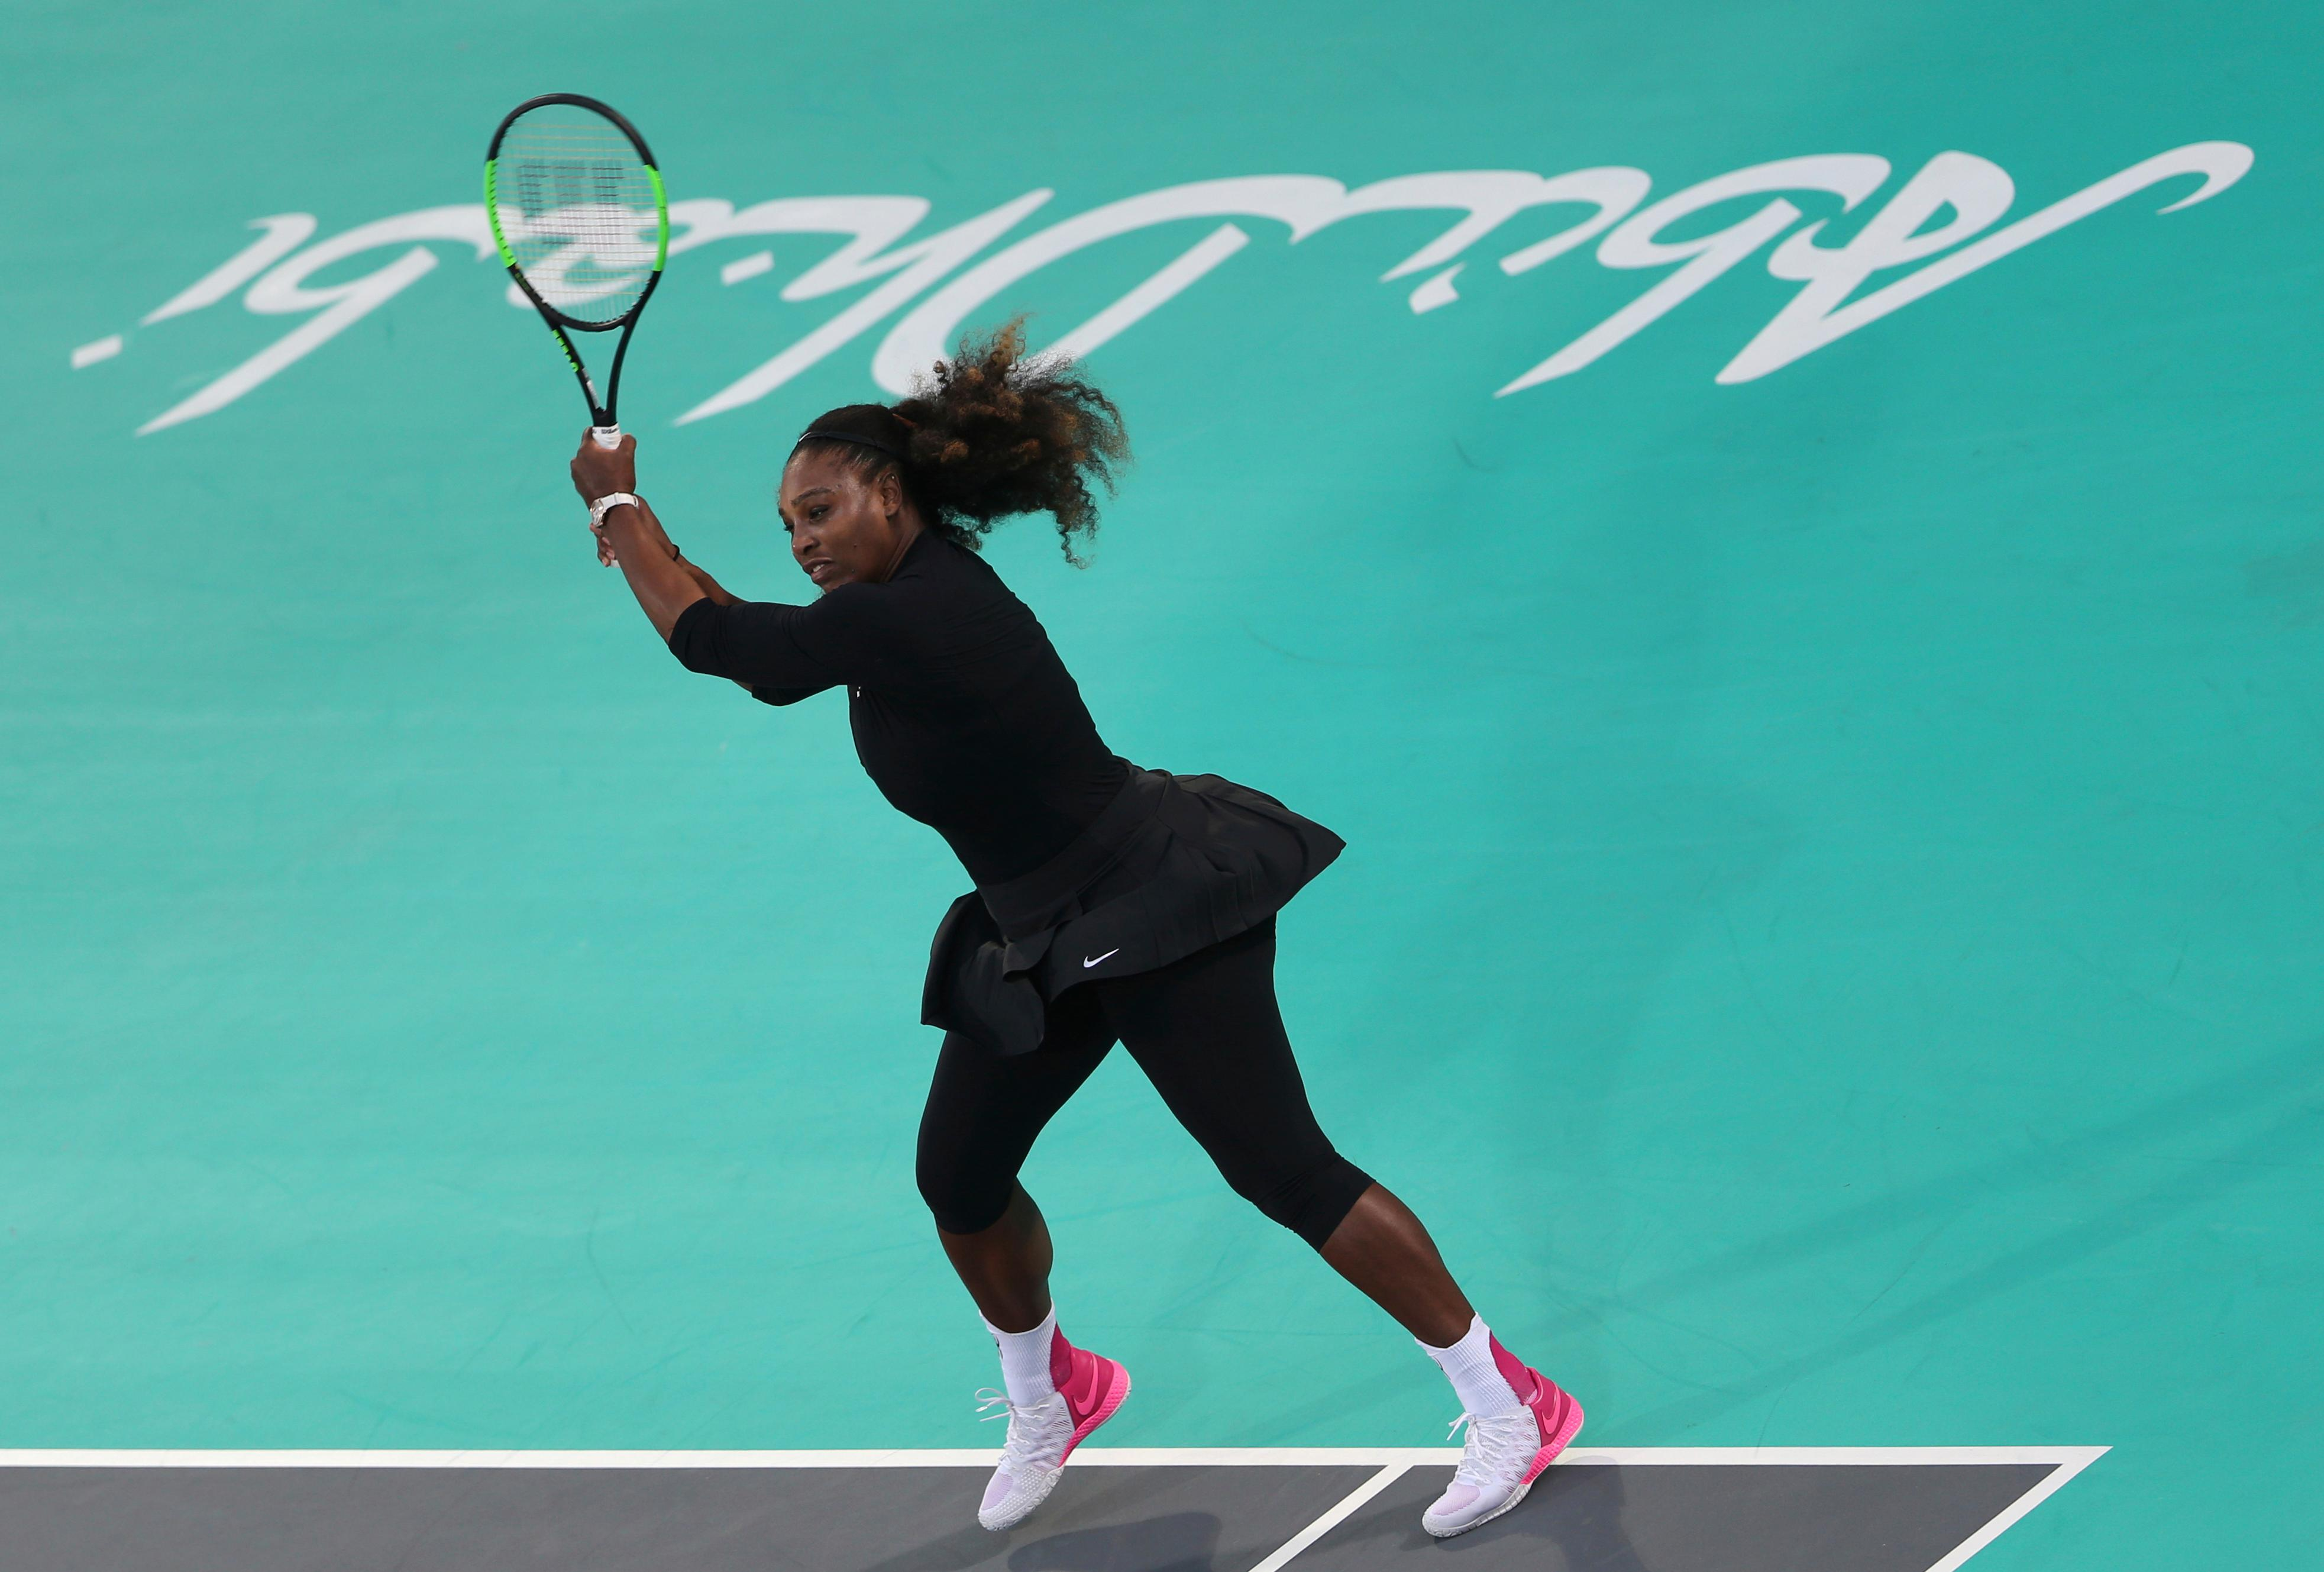 Serena Williams from the U.S. returns the ball to Jelena Ostapenko of Latvia during the final day of the Mubadala World Tennis Championship in Abu Dhabi, United Arab Emirates, Saturday, Dec. 30, 2017. (AP Photo/Kamran Jebreili)